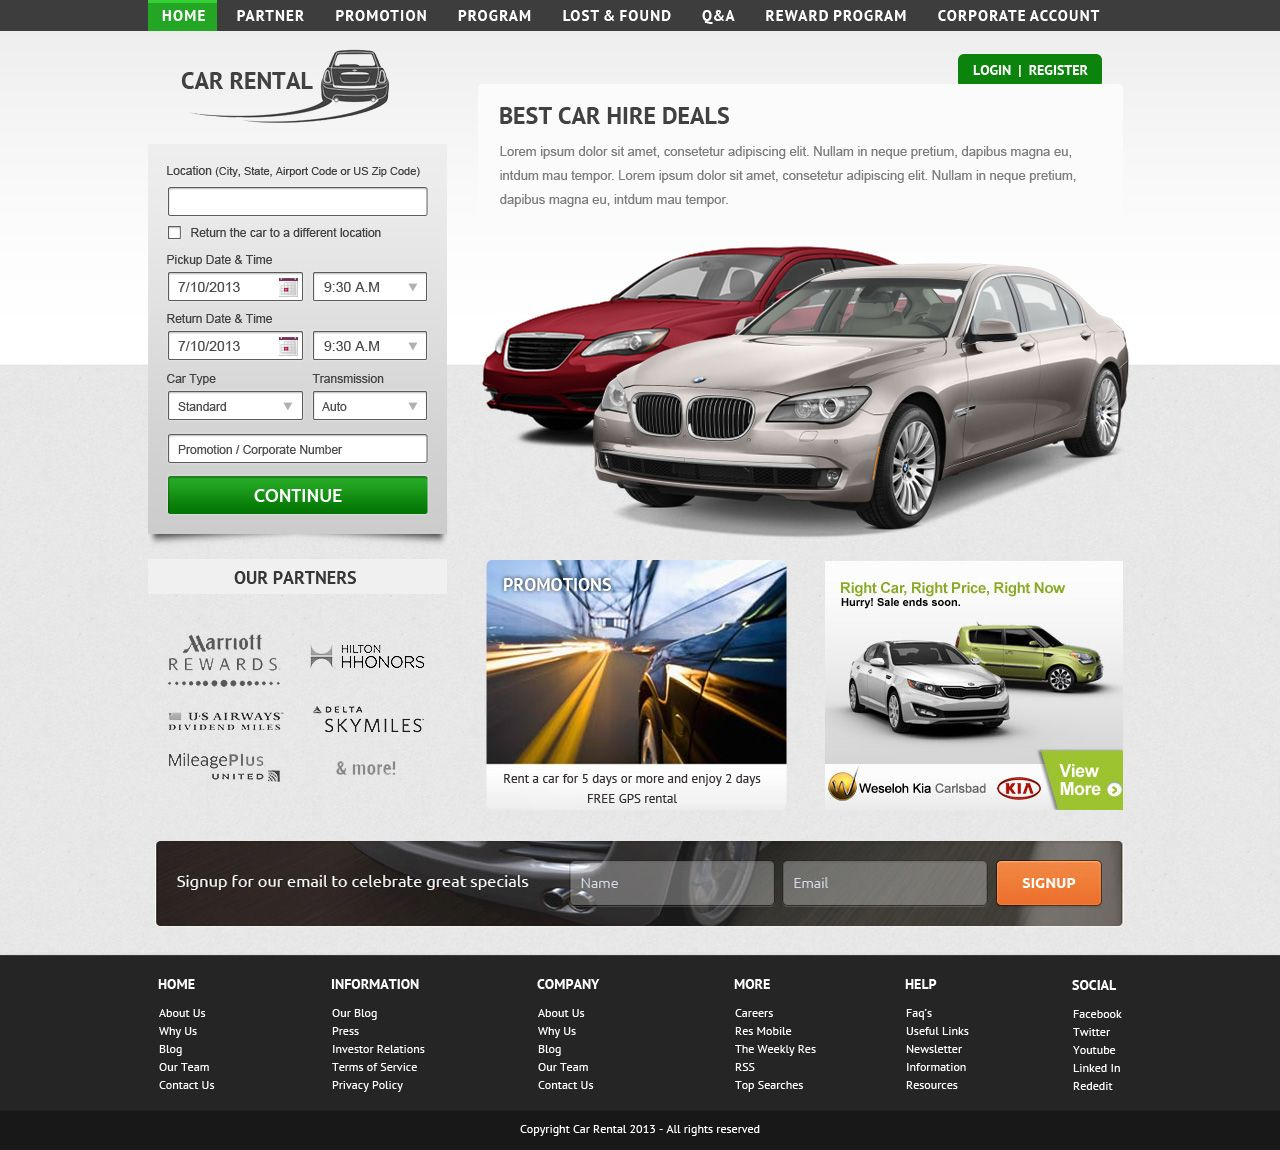 Homepage Mockup For A Car Rental Company With Images Car